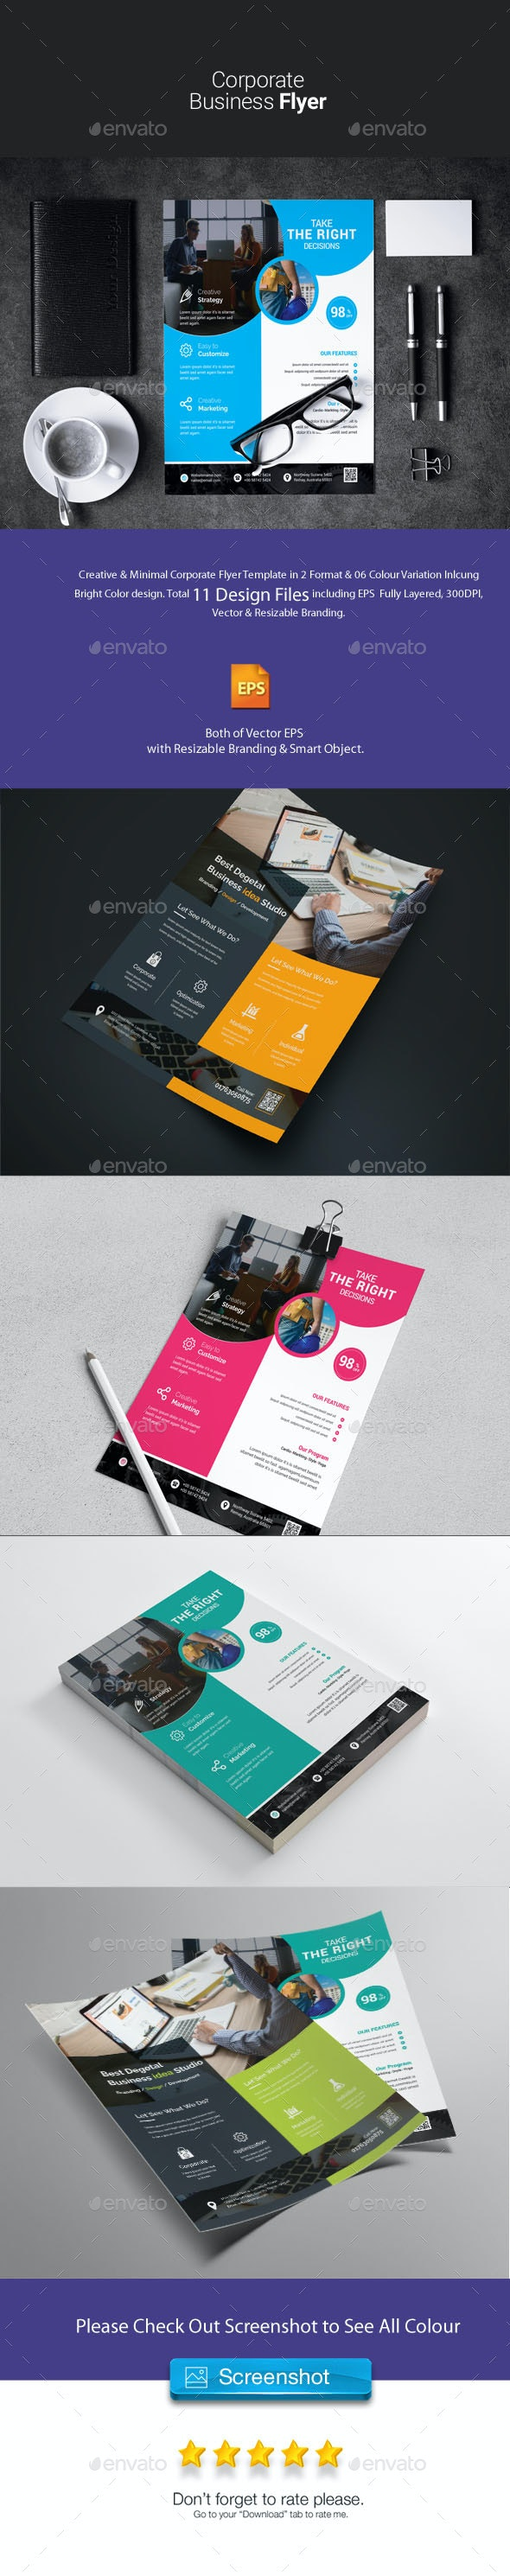 Corporate Flyer bundle 2 in 1 - Corporate Flyers